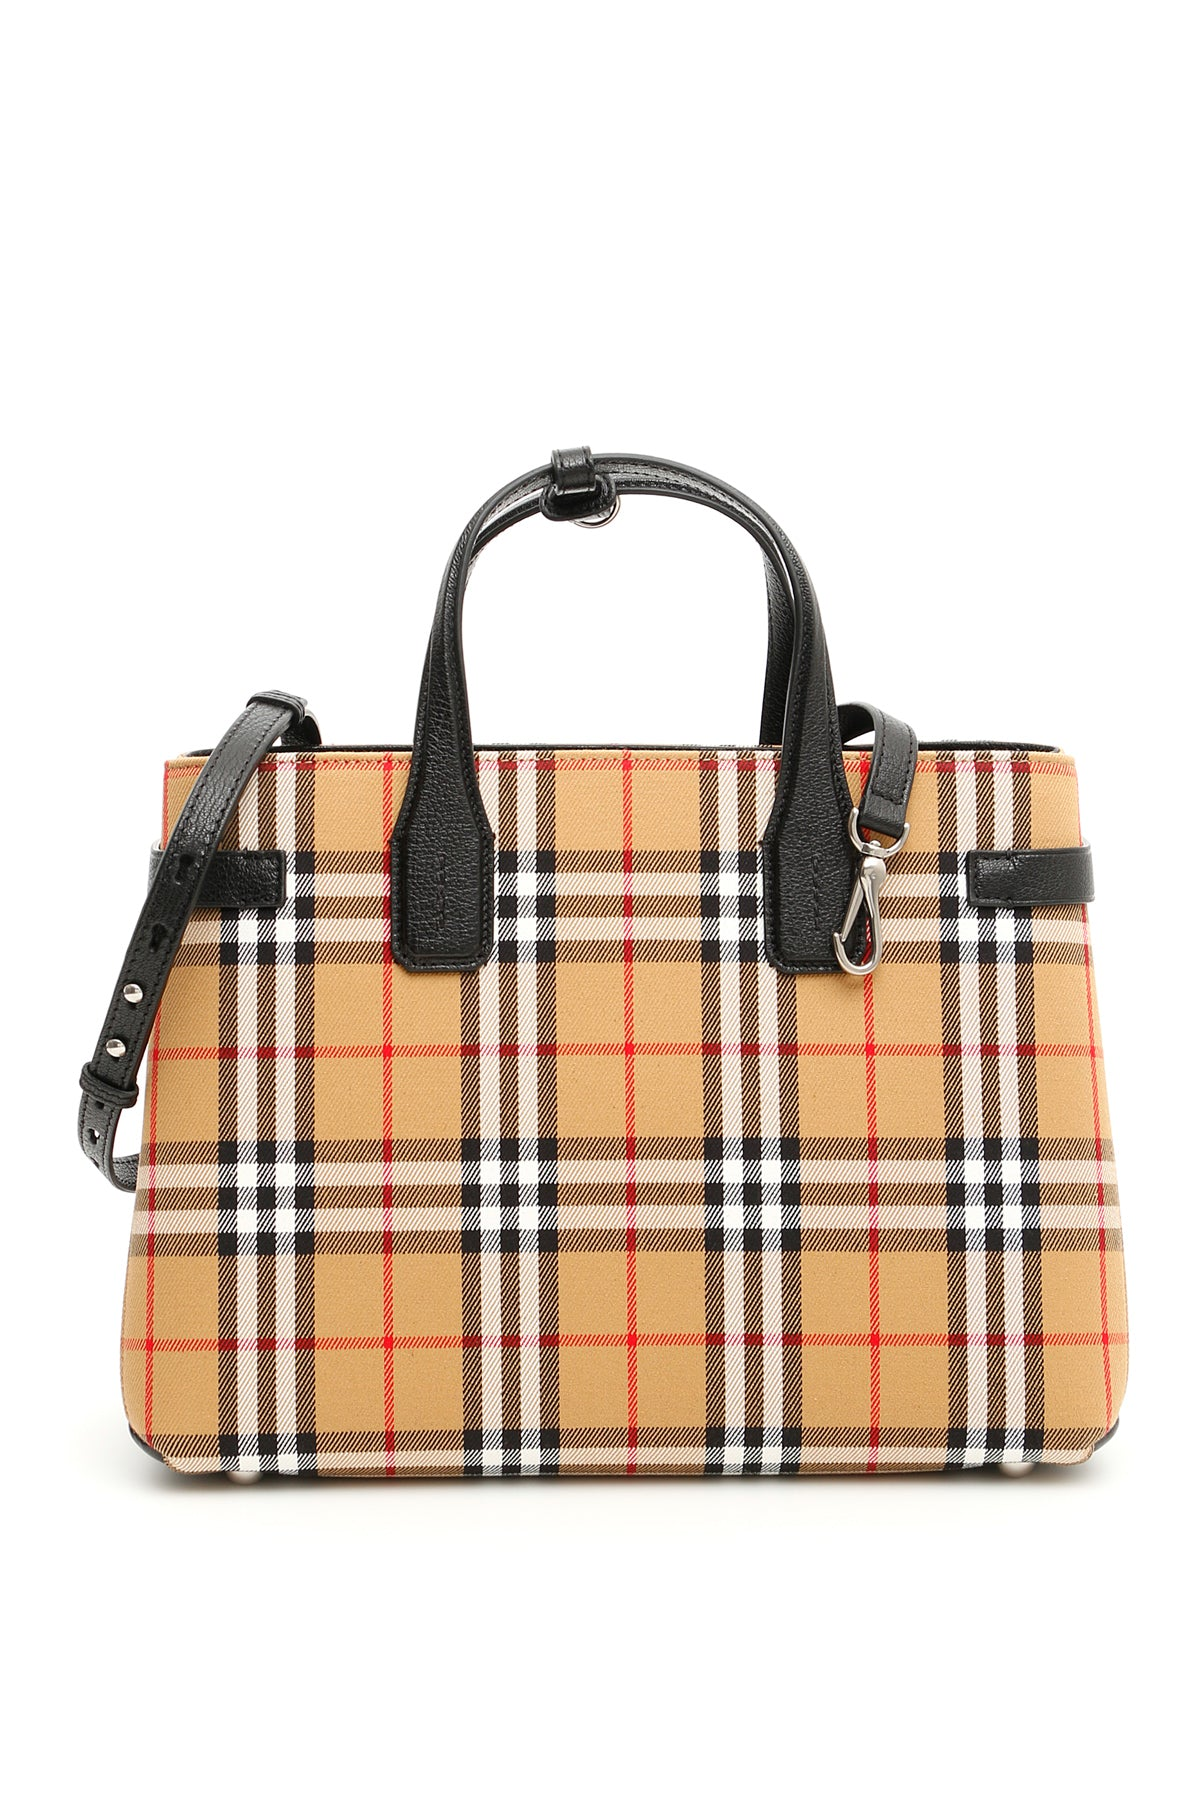 BURBERRY BURBERRY MEDIUM BANNER VINTAGE TOTE BAG. Photo  CETTIRE 88337963edd52